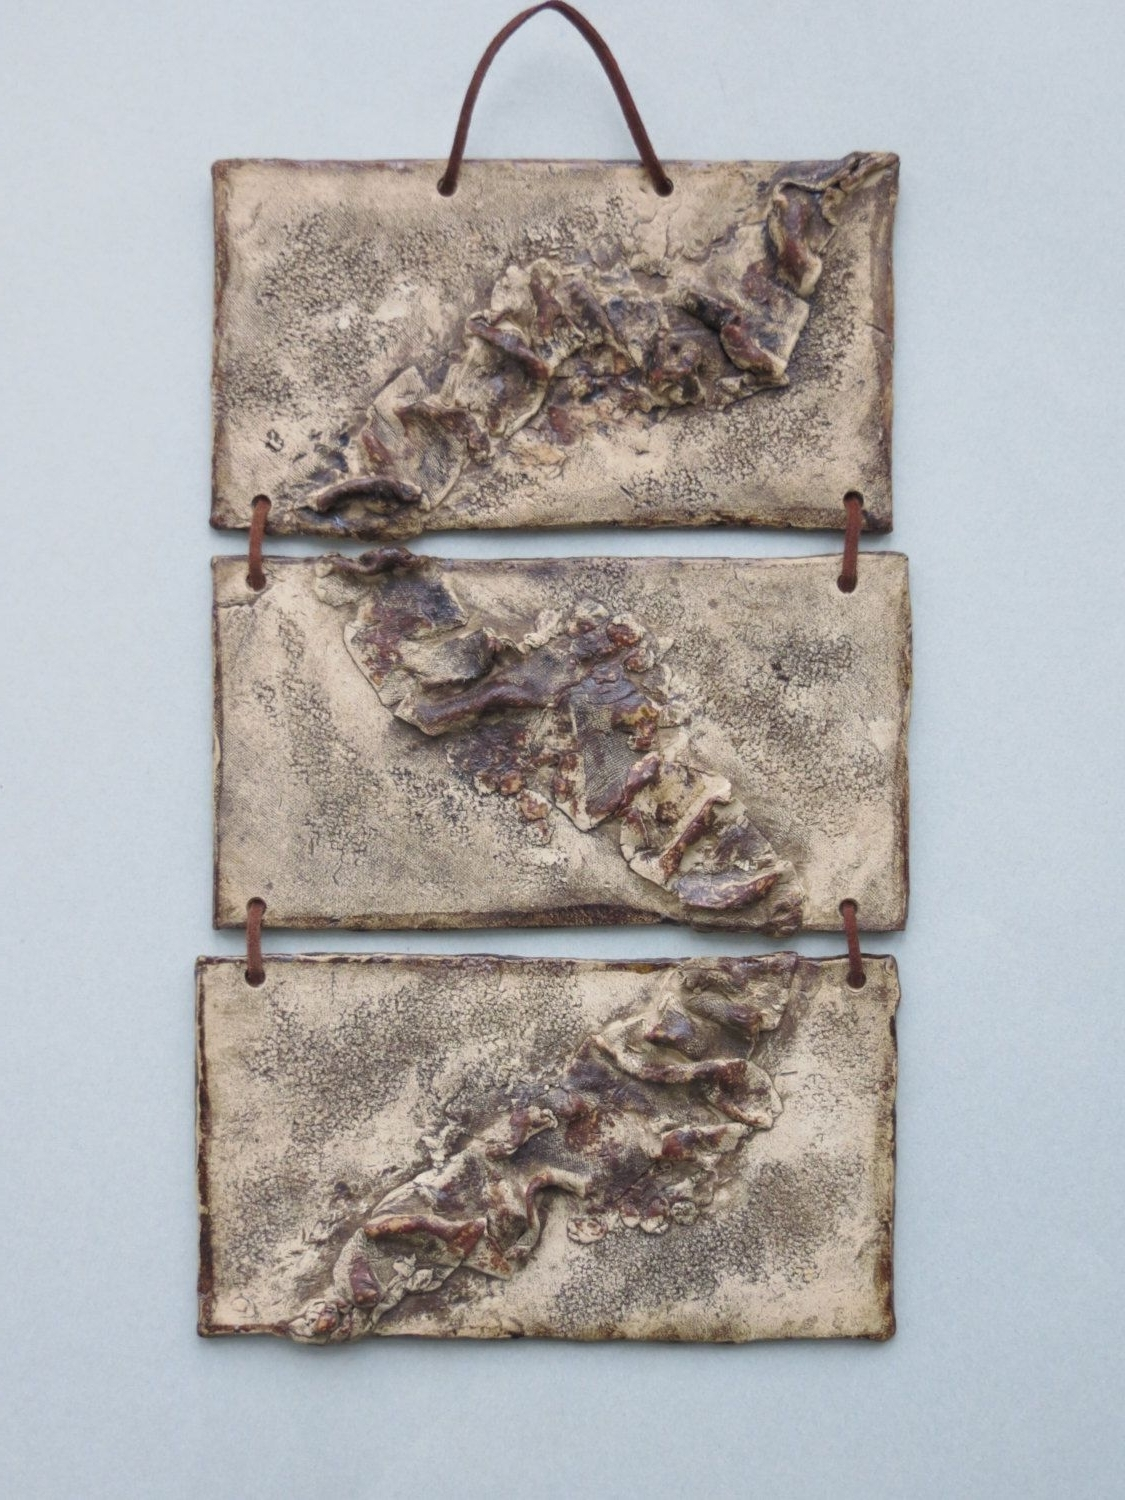 Ceramic Wall Art Intended For Most Popular Organic Abstract Ceramic Wall Hanging Earth Tone Clay Wall Art (View 9 of 15)